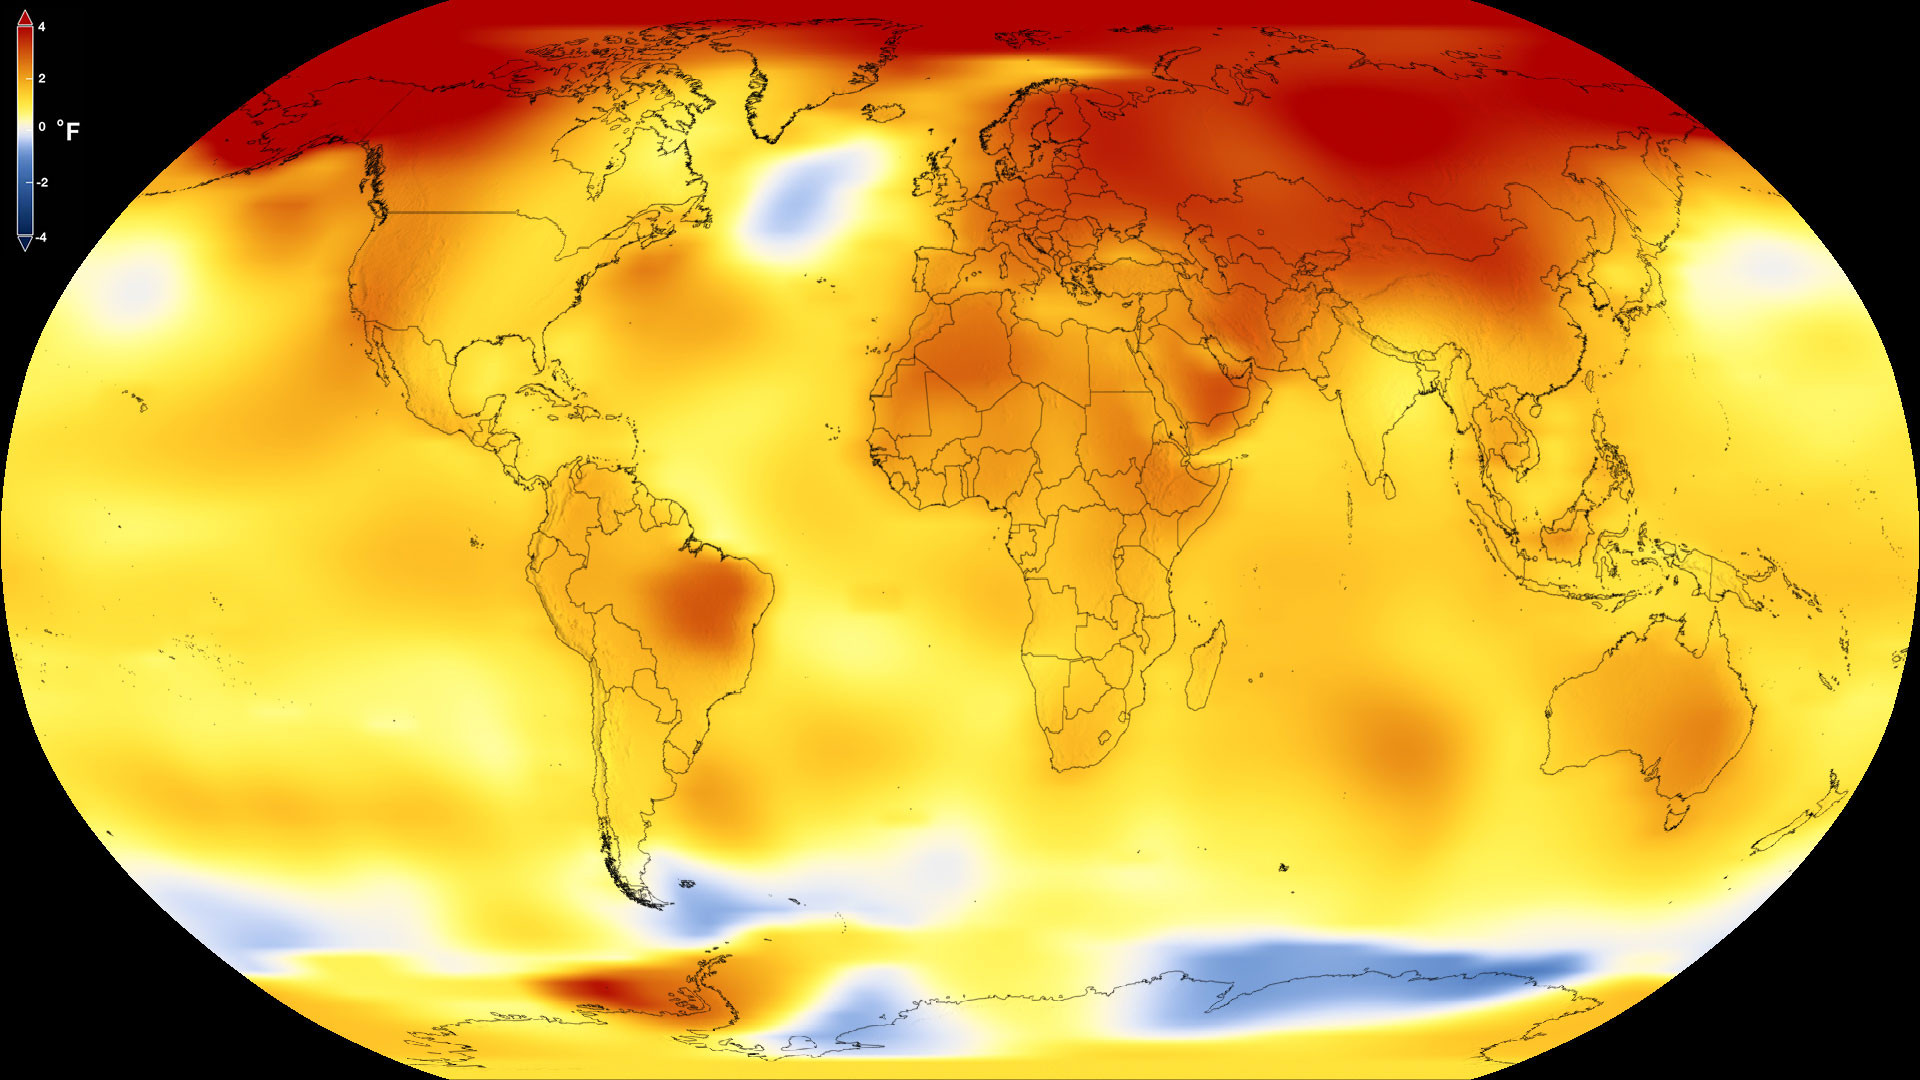 NASA And NOAA Show Long-Term Global Warming Trend Continues